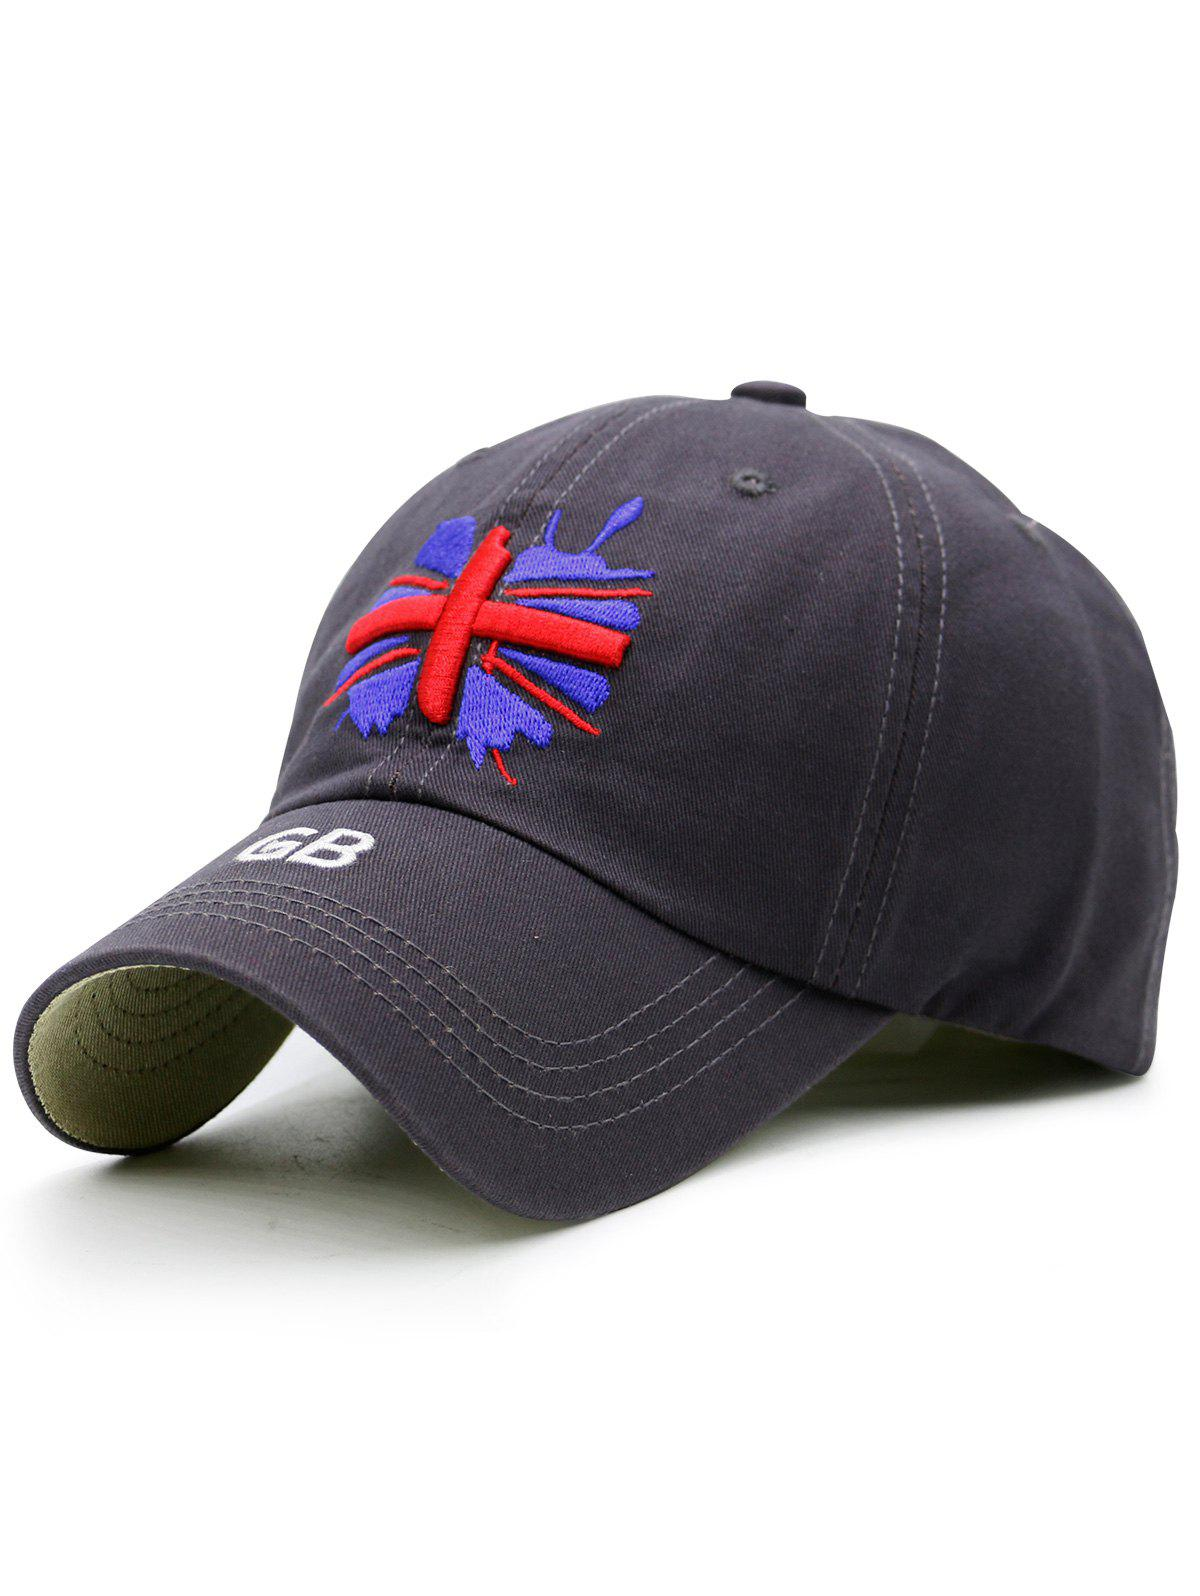 England Flag Embroidered Baseball Hat, Blue gray